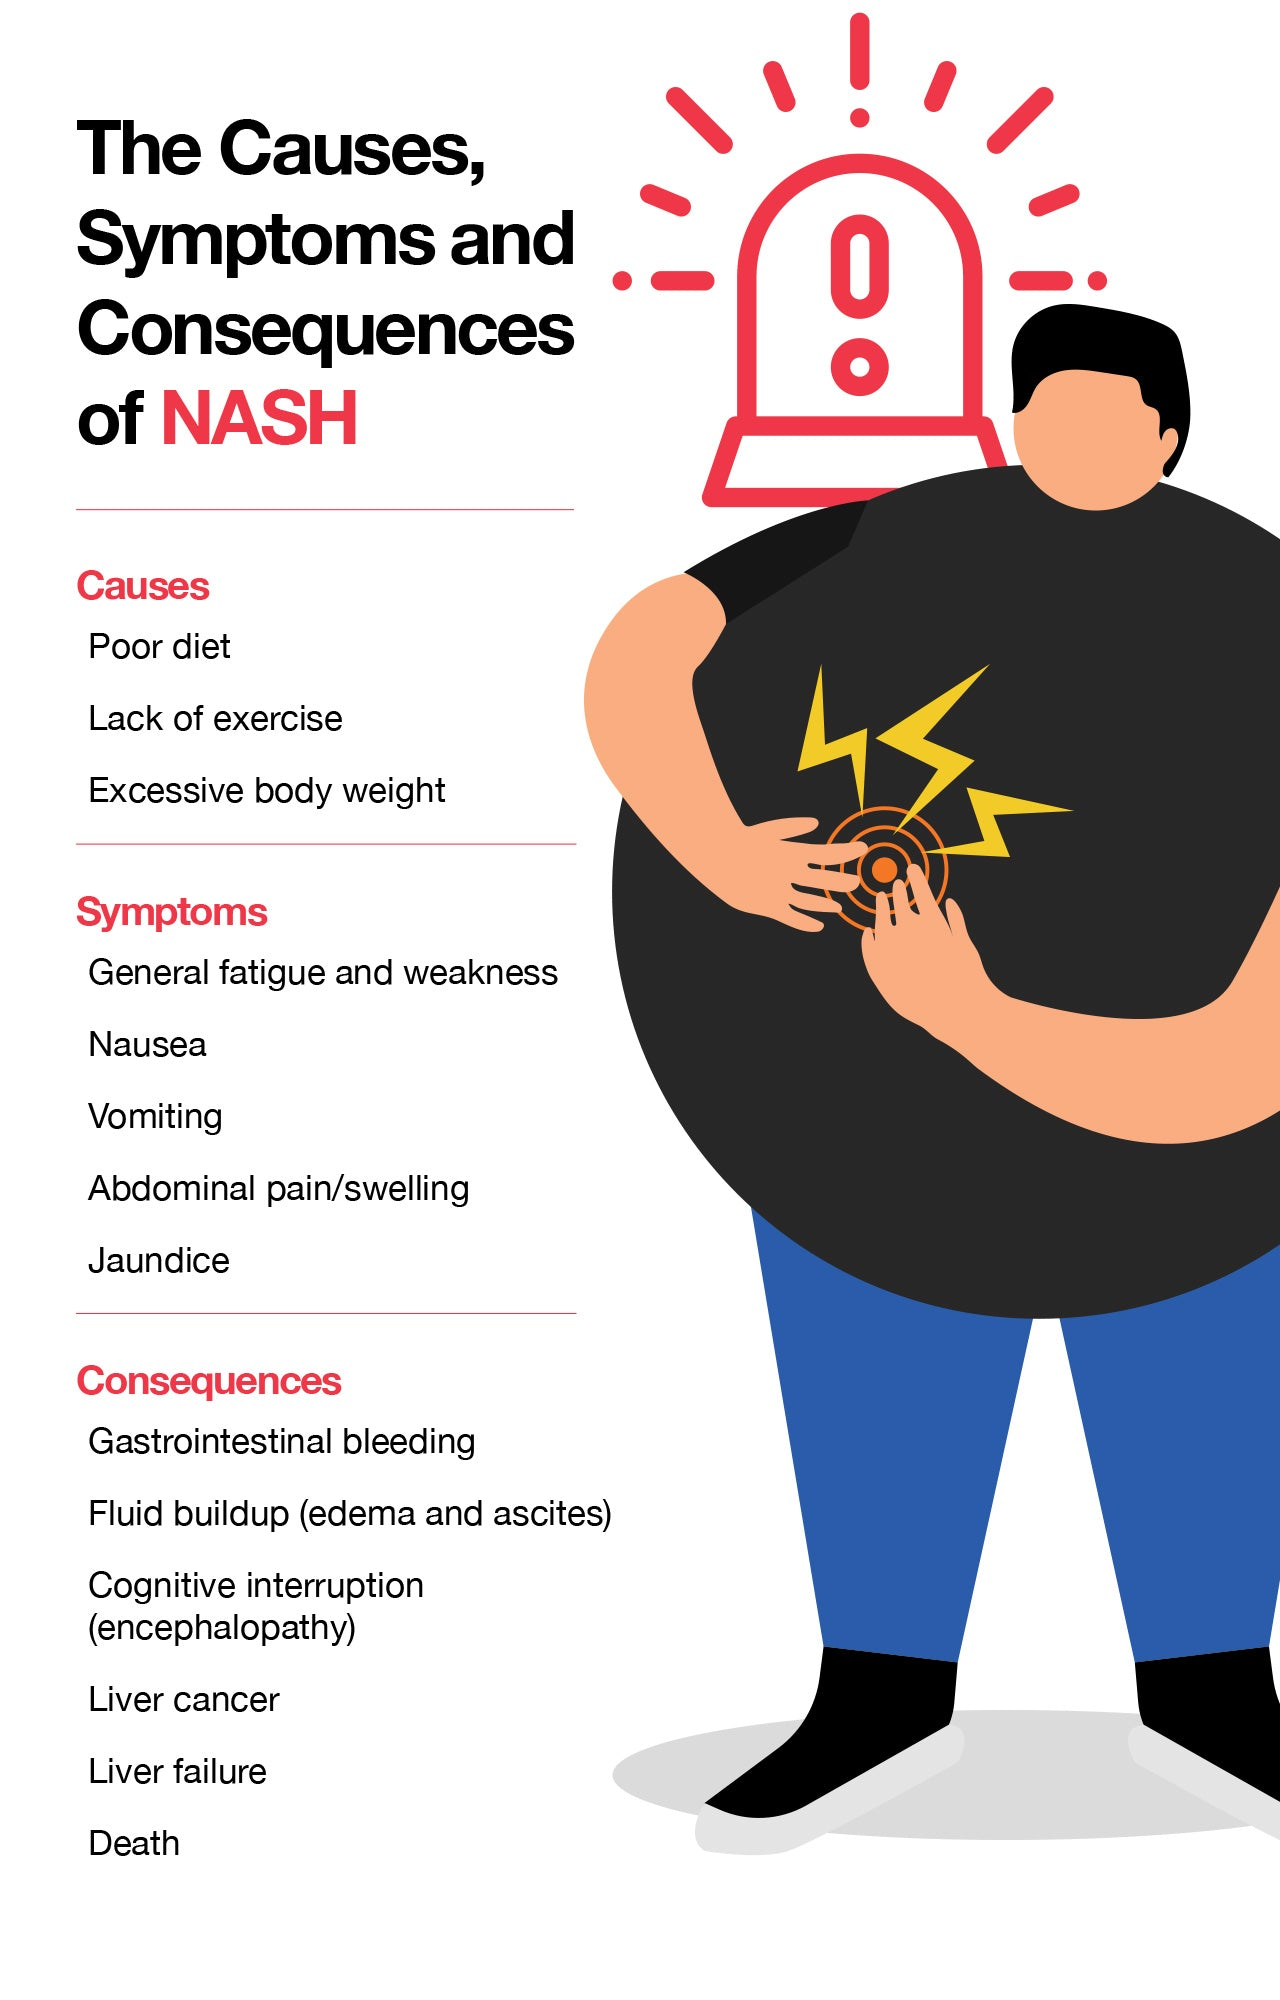 The Causes, Symptoms and Consequences of NASH